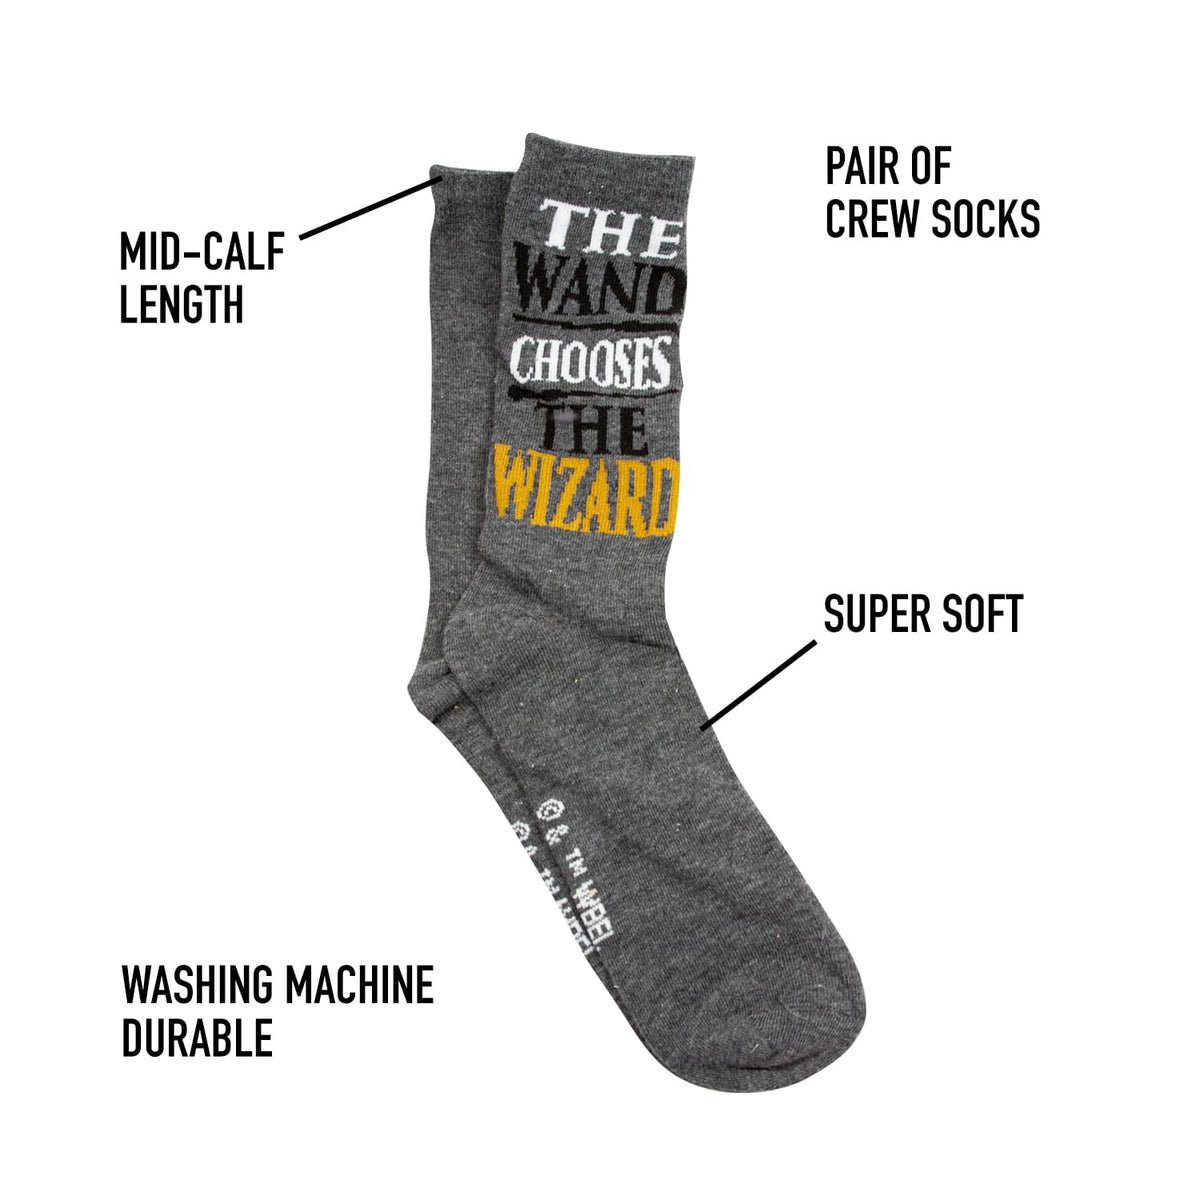 OFFICIAL Harry Potter Socks | The Wand Chooses the Wizard | Adult Crew Socks